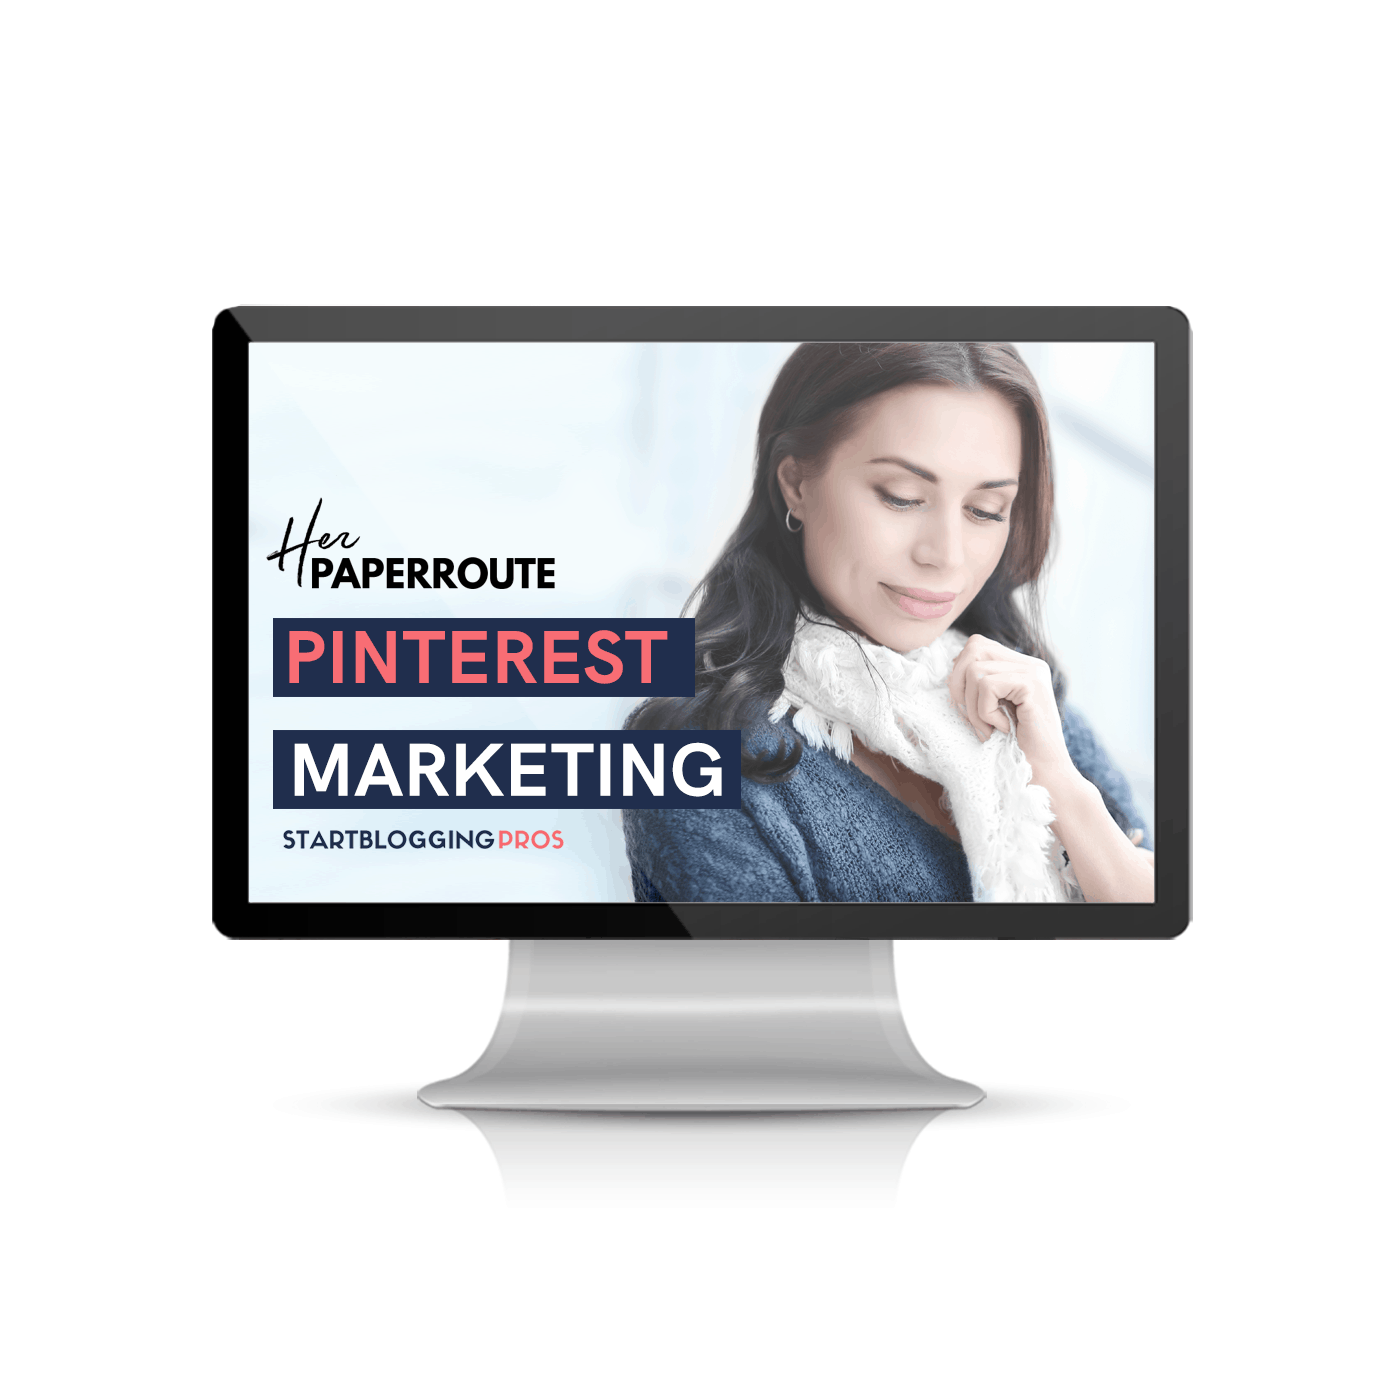 Pinterest marketing course learn pinterest seo pinterest course online marketing pinterest tips, go viral herpaperroute How to create a viral pin how to make pins go viral pinterest marketing course Pinterest course startbloggingpros.com